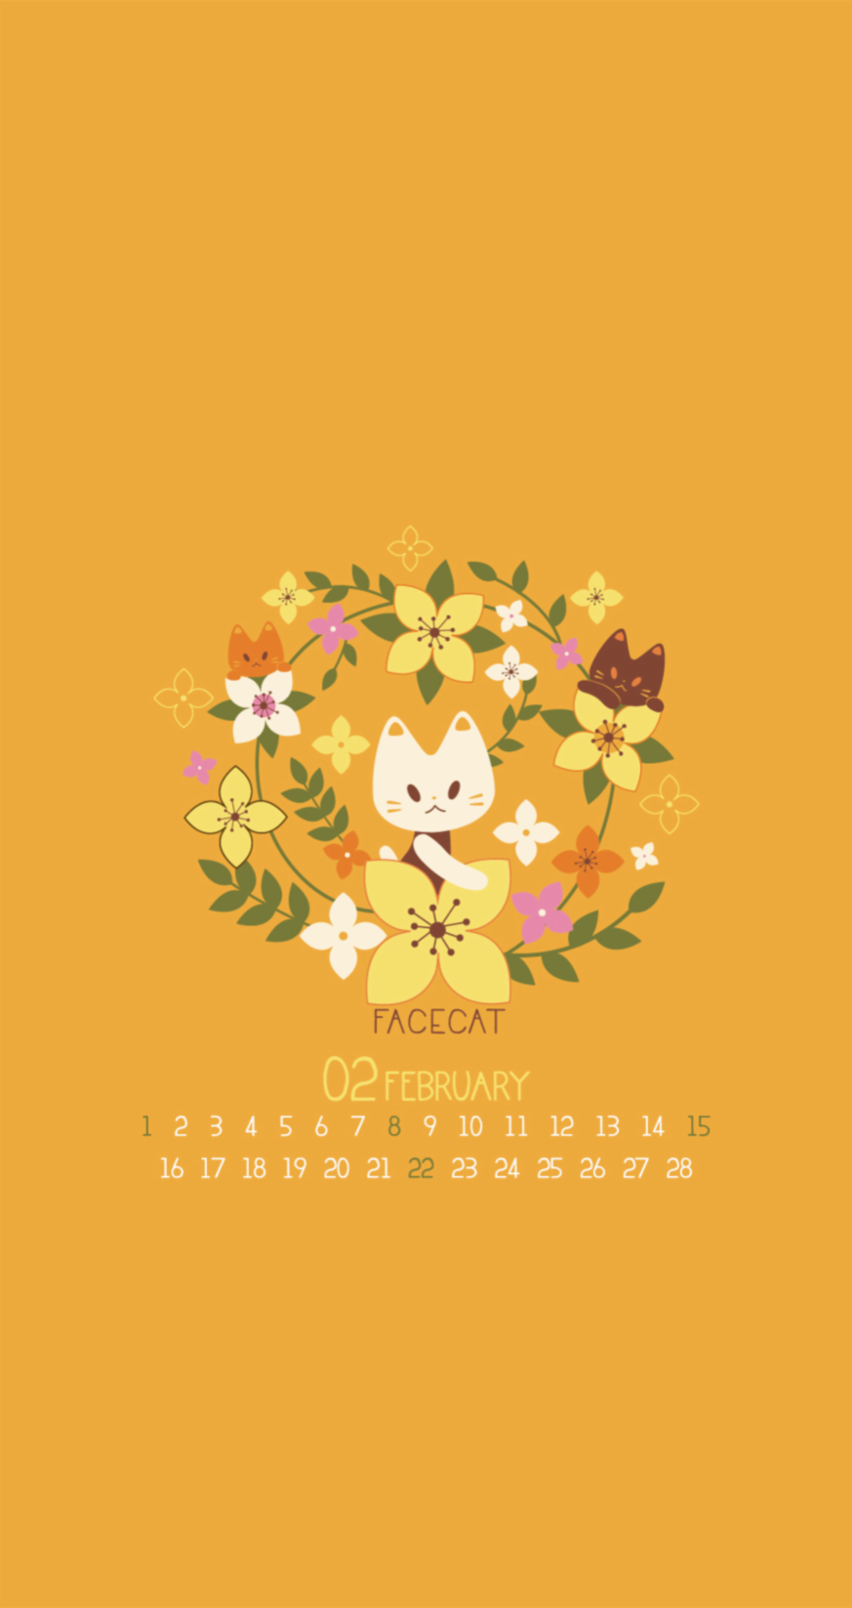 Tap image for February calendar wallpapers! February